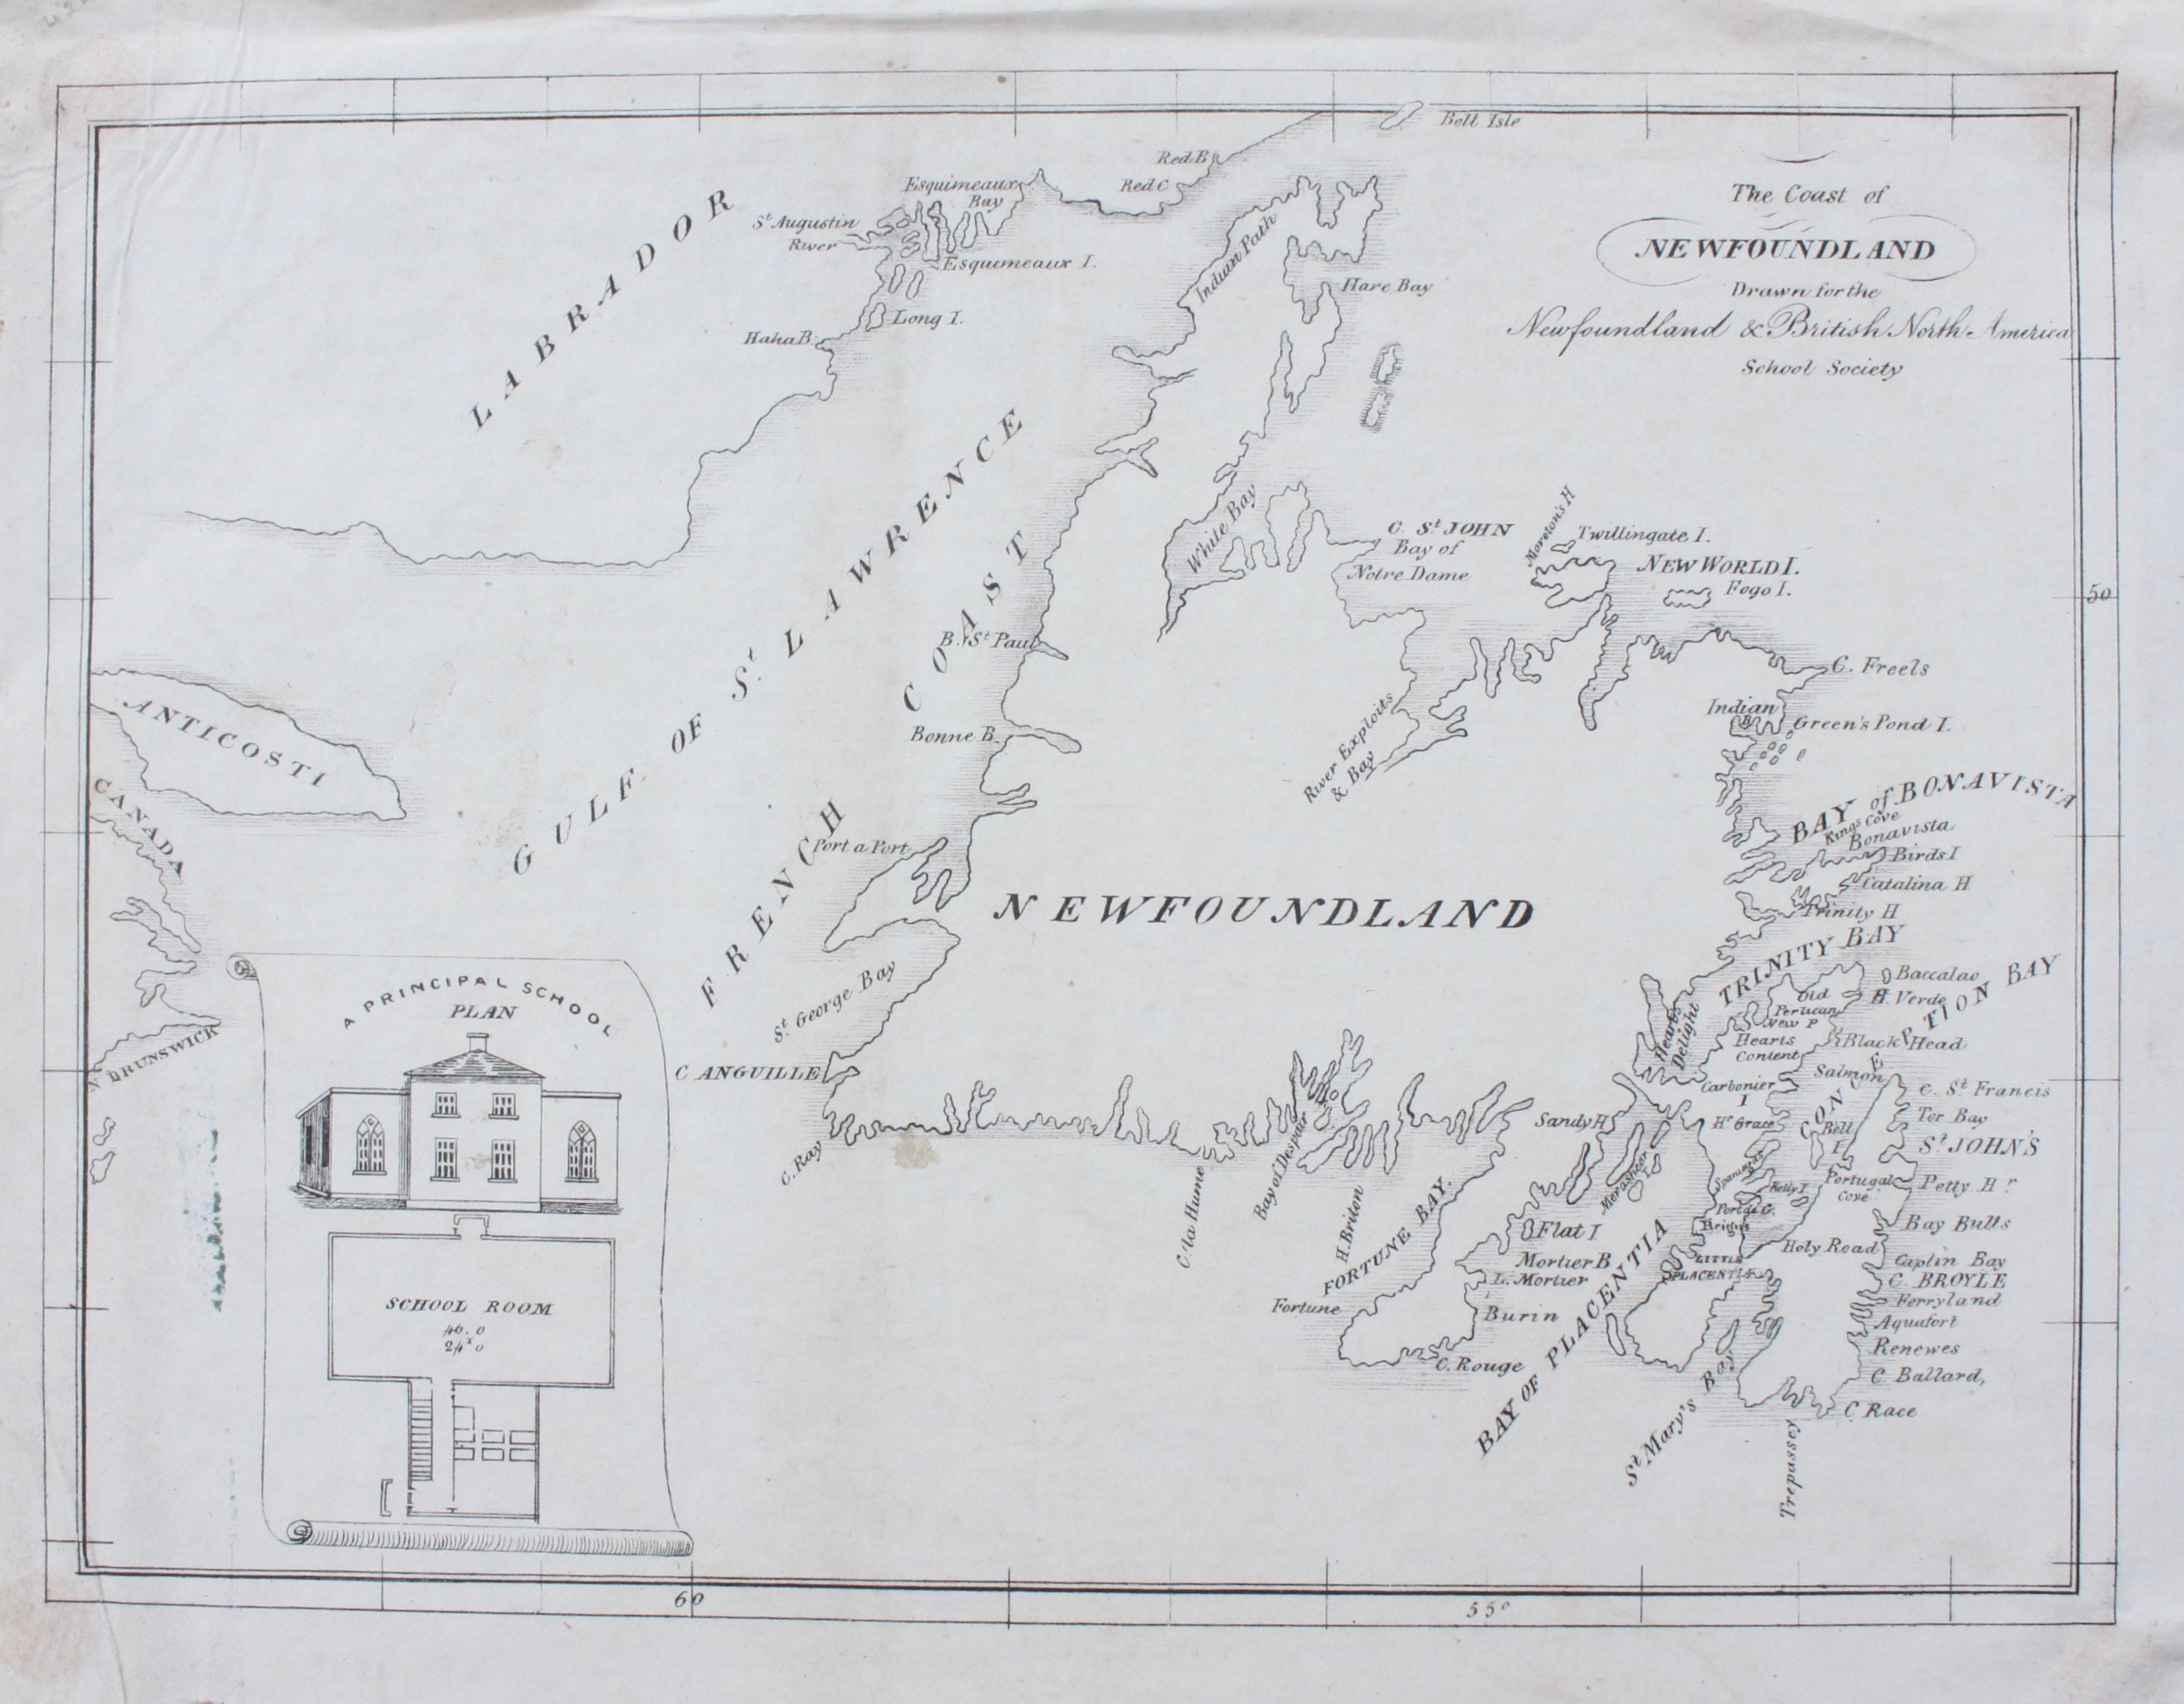 Image for The Coast of Newfoundland Drawn for the Newfoundland and British North America School Society.